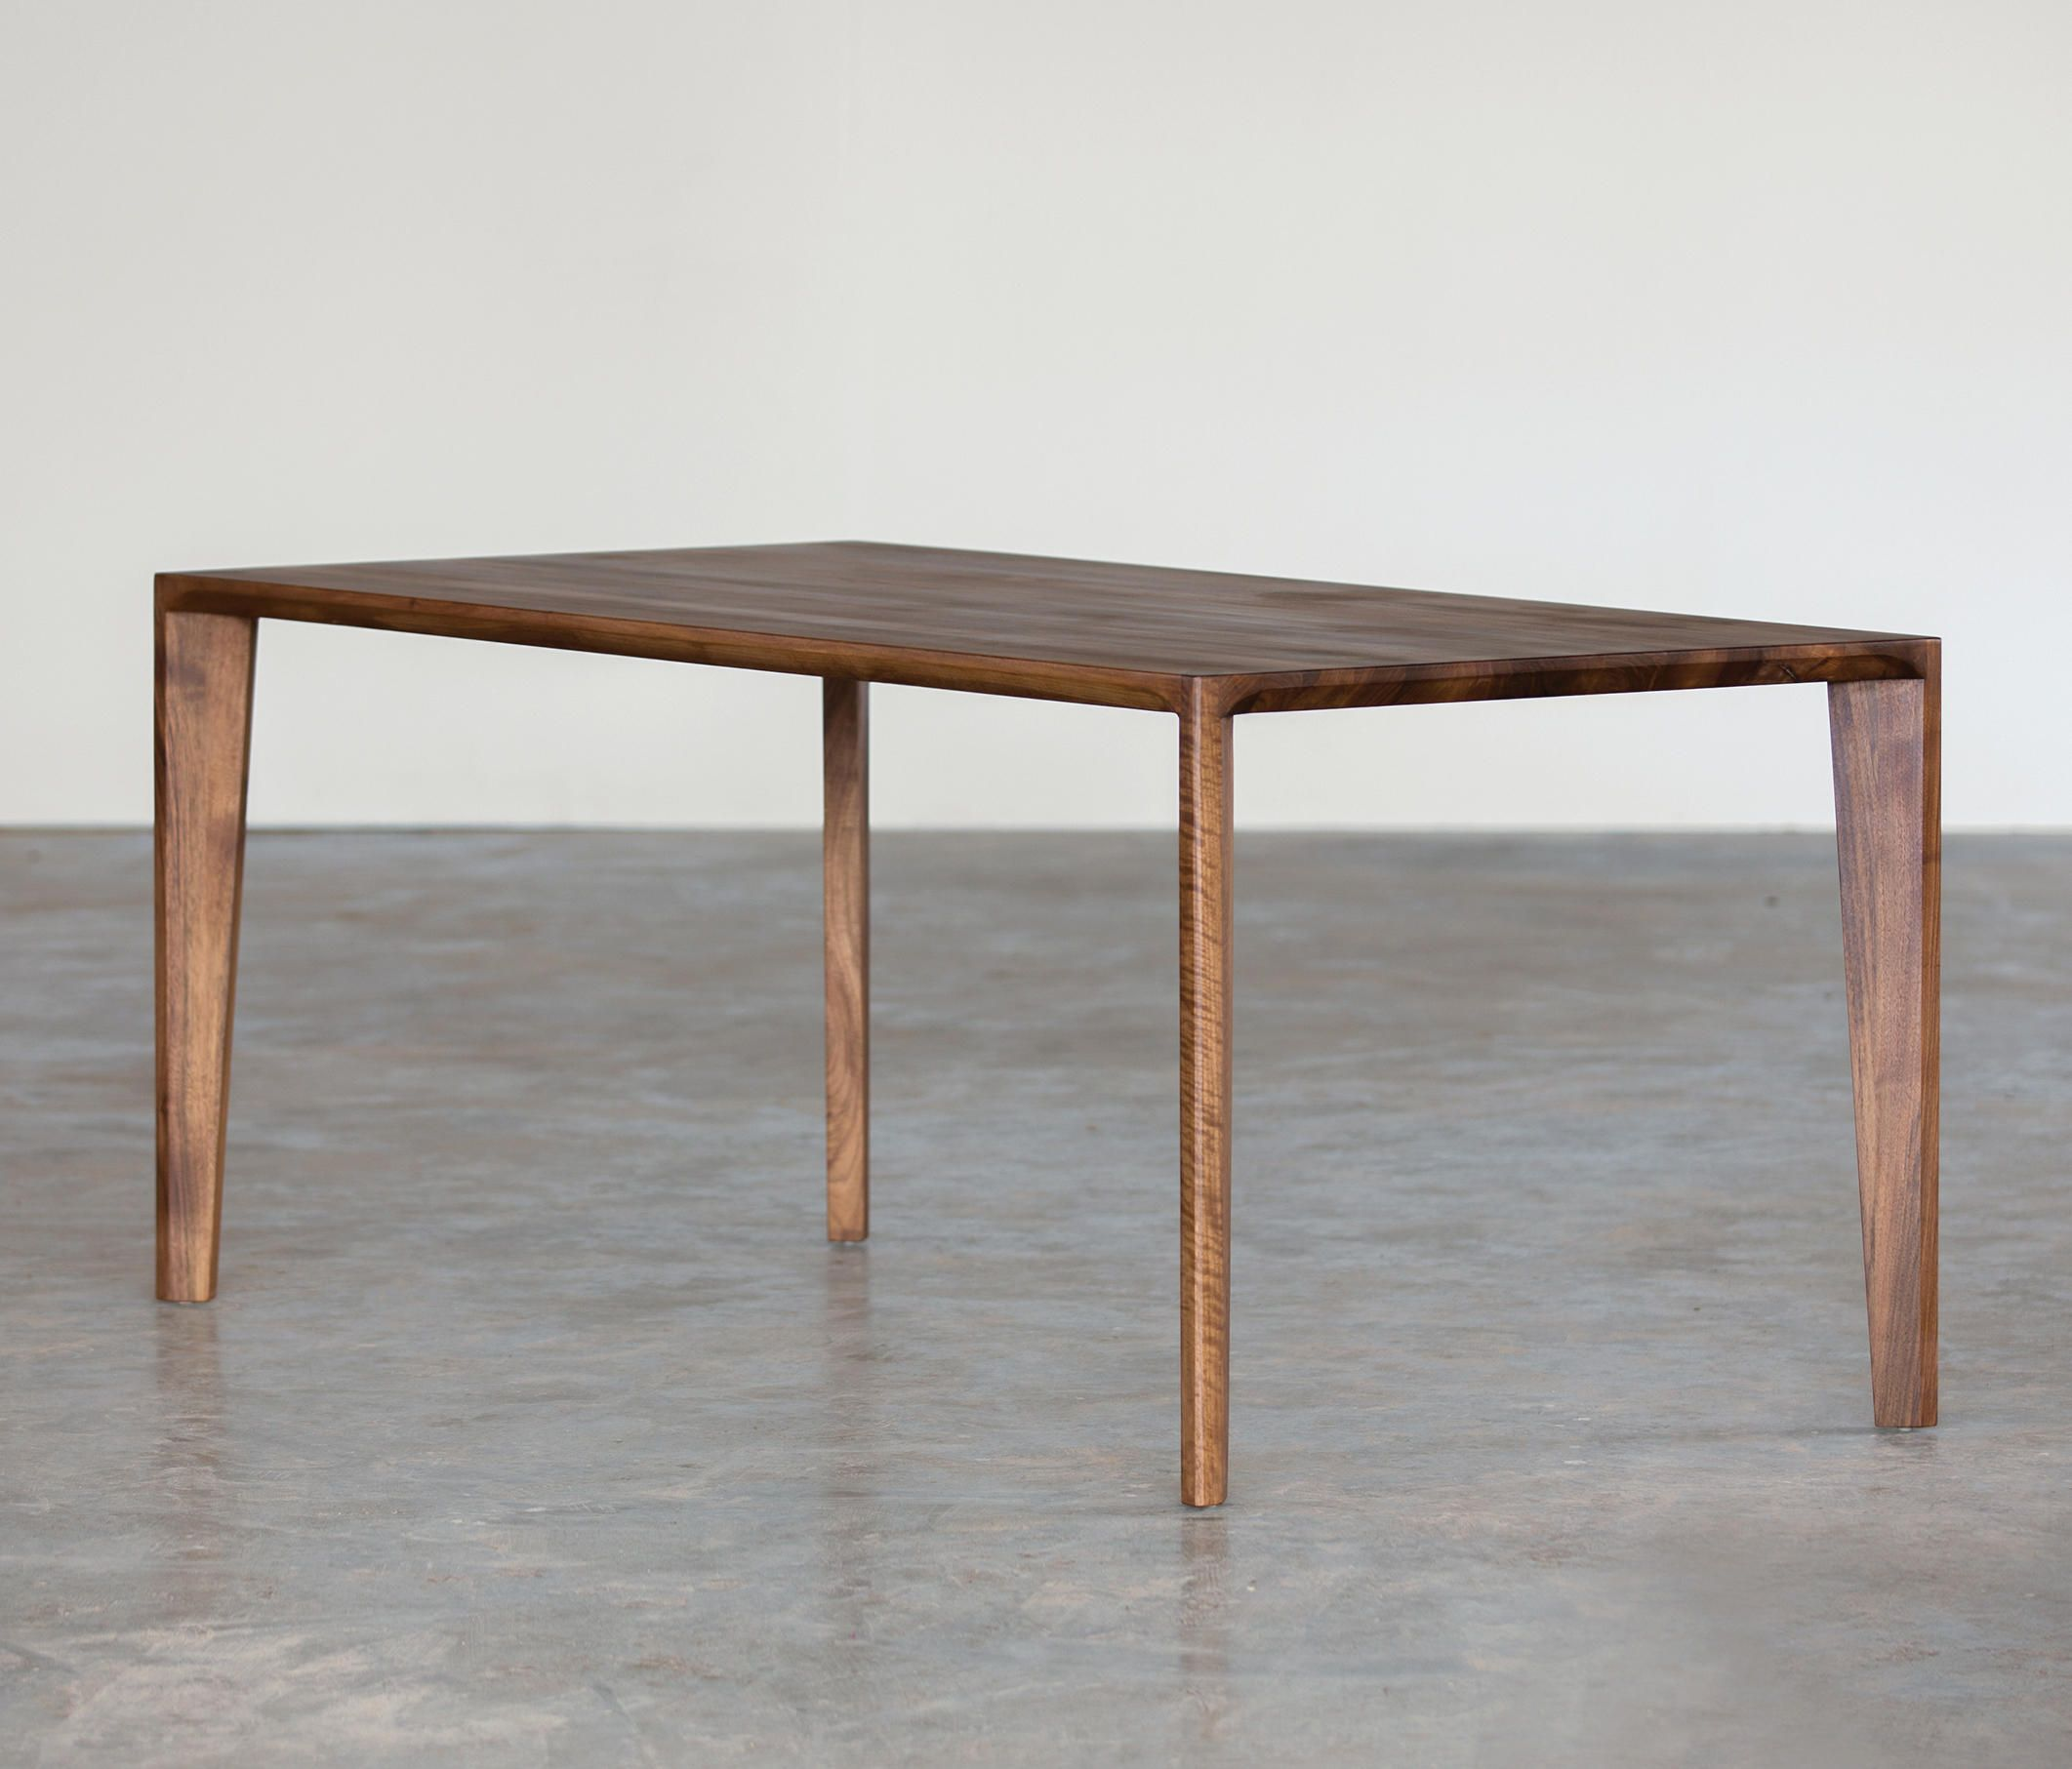 Hanny Table Dining Tables From Artisan Architonic In 2020 Dining Table Furniture Solid Wood Dining Table